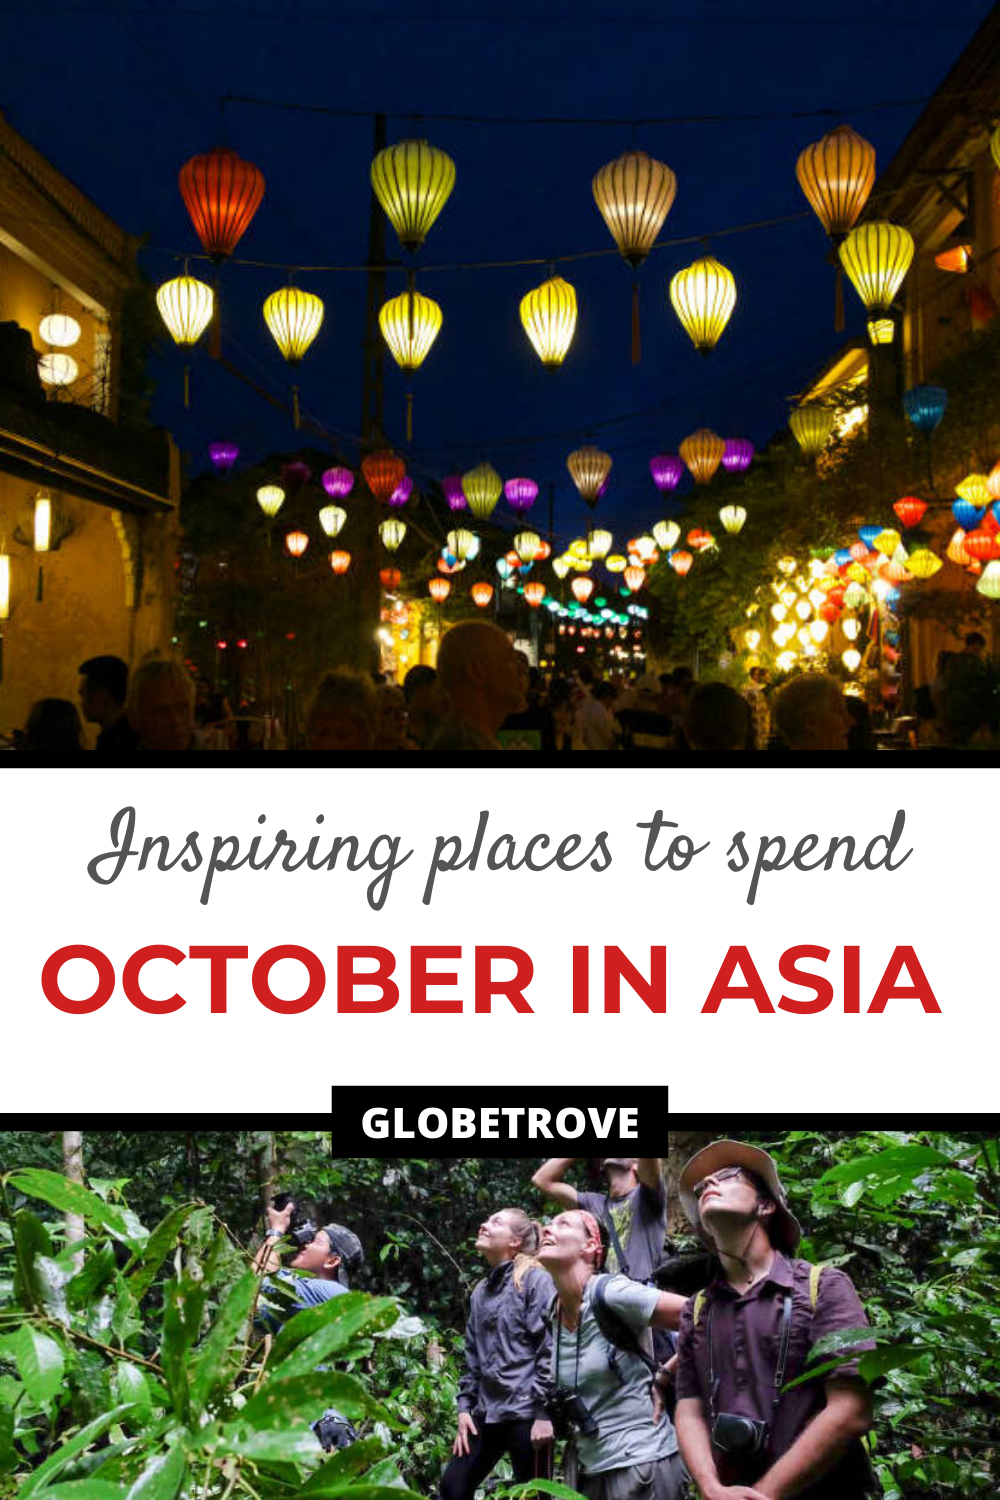 Thought of spending October in Asia but don't know where to go? Our curated list of gorgeous destinations will have you packing your bag immediately! #Asia Asia Travel   Asia in October   Spending October in Asia   Asia Tourism   Travelling Asia   Gorgeous Asia   Backpacking Asia   Best places to spend October in Asia 